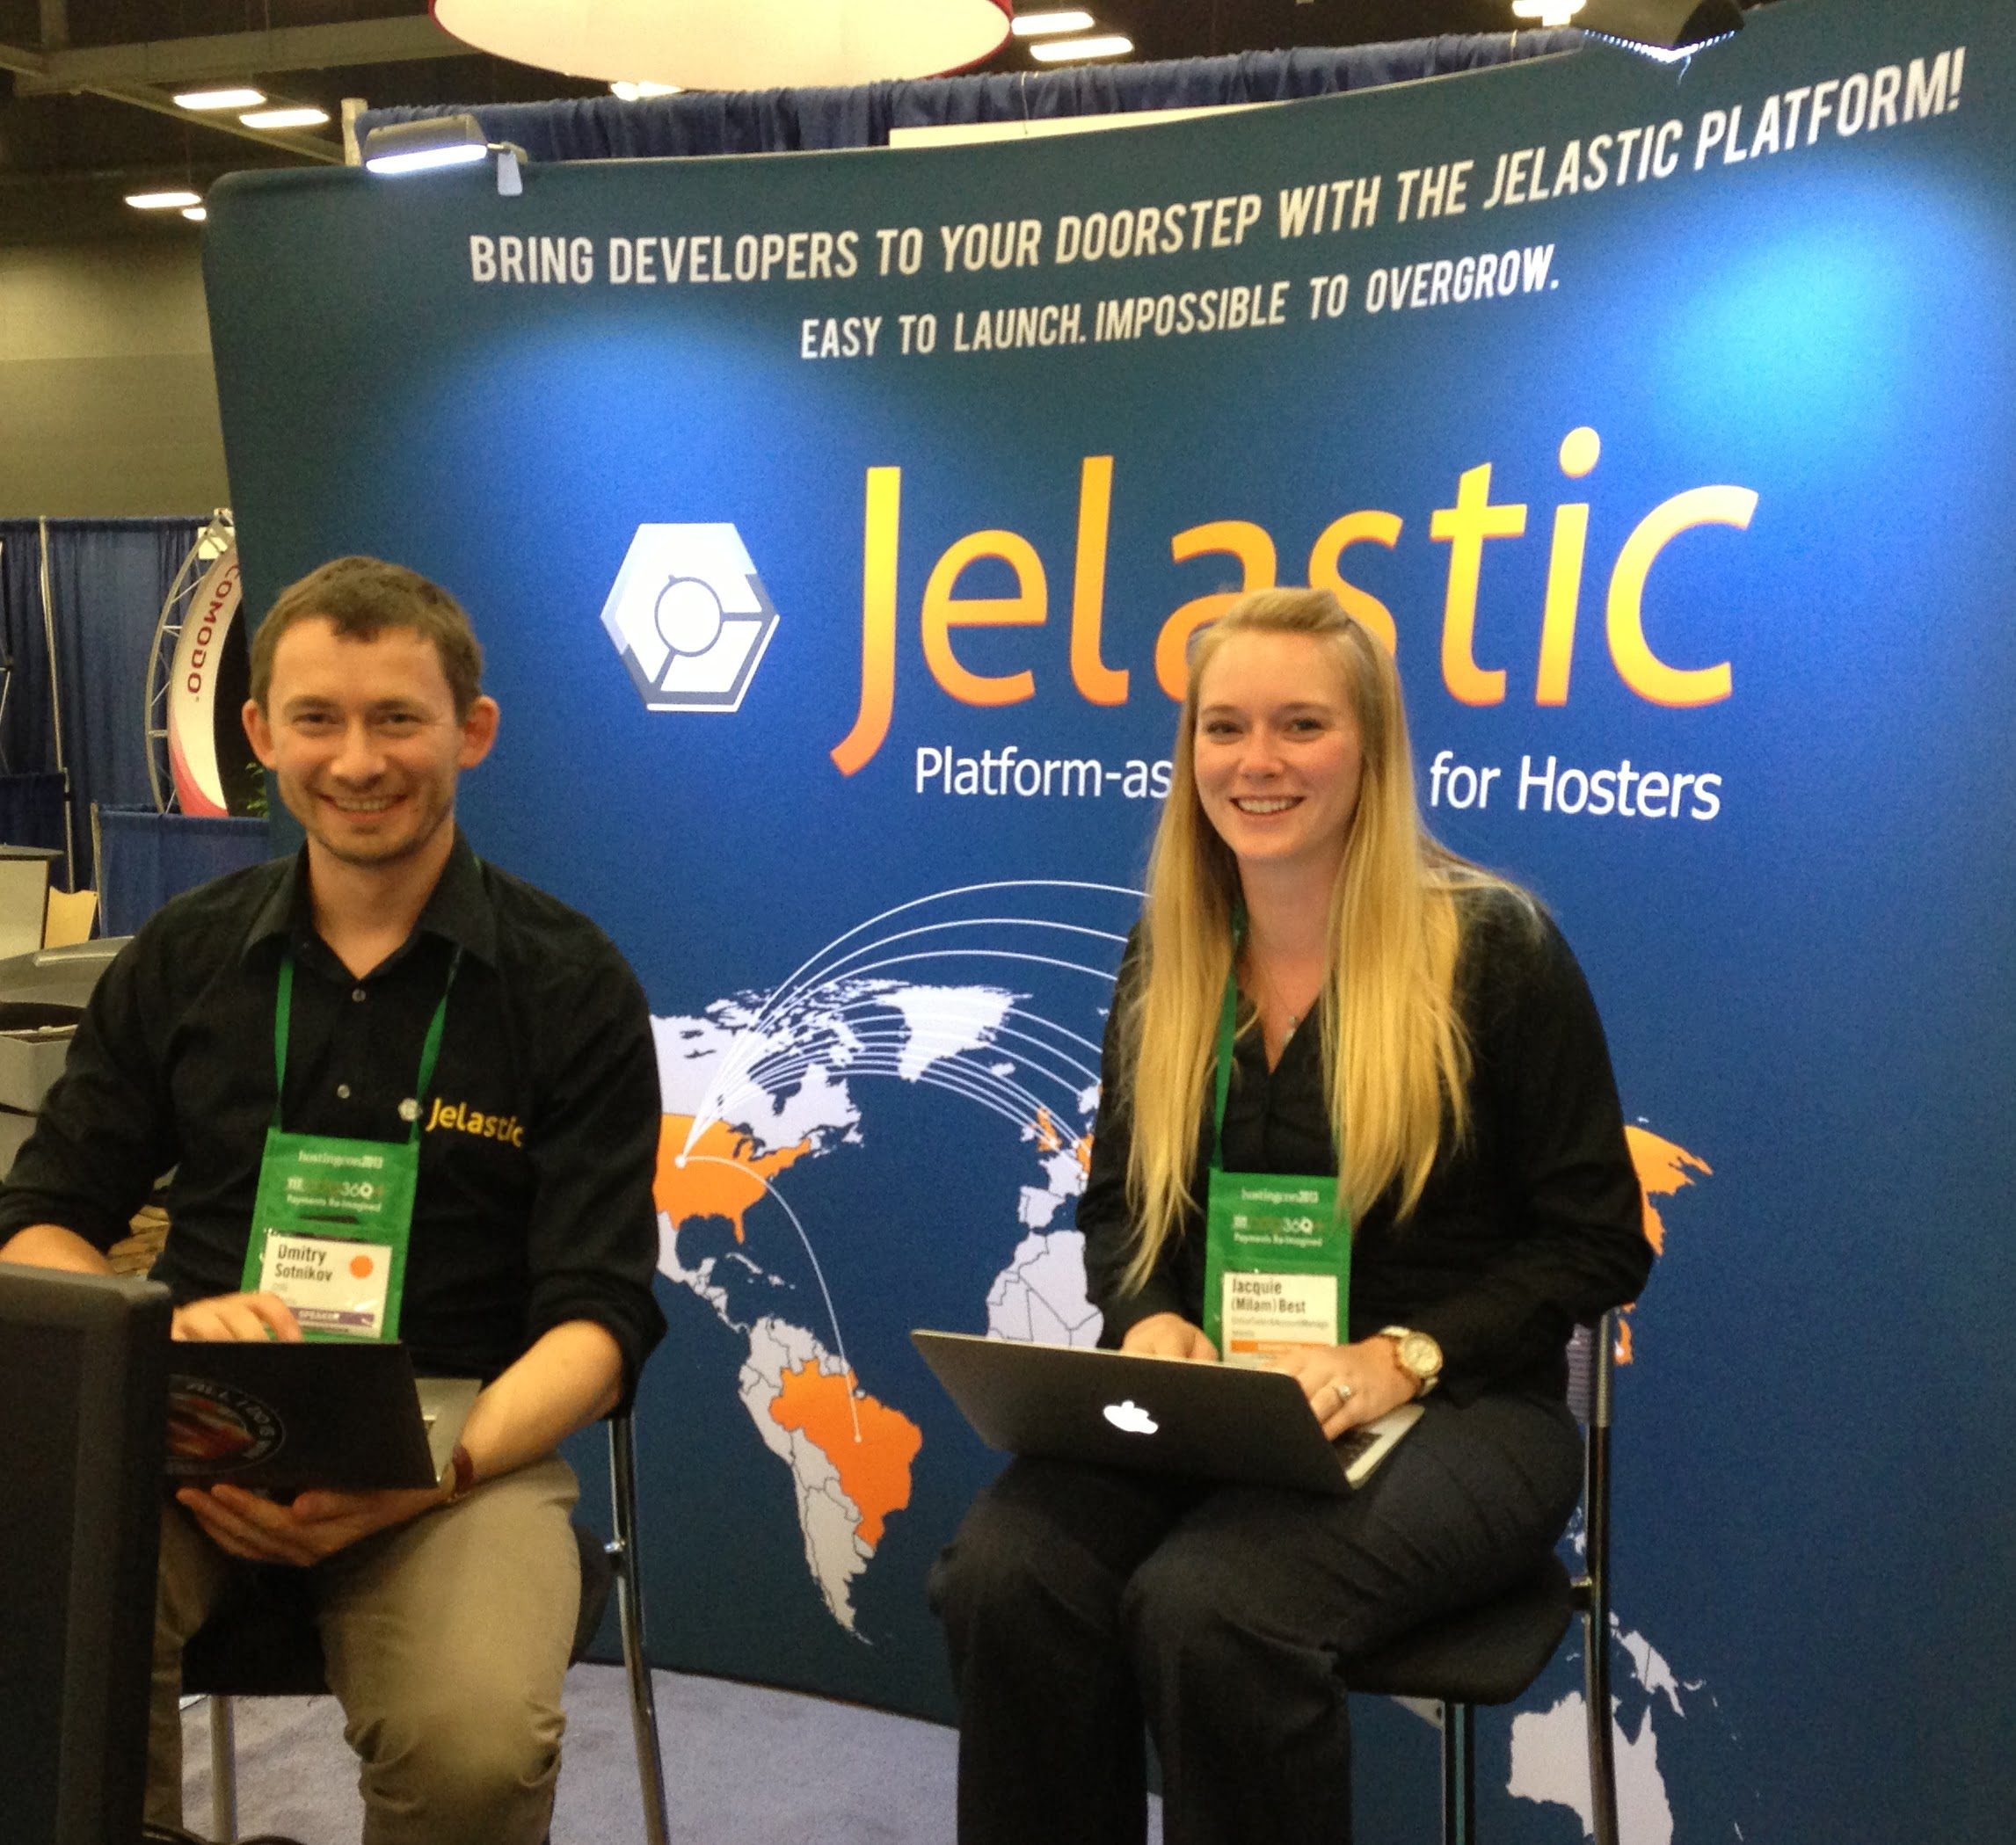 Jacquie and Dmitry from Jelastic at HostingCon 2013